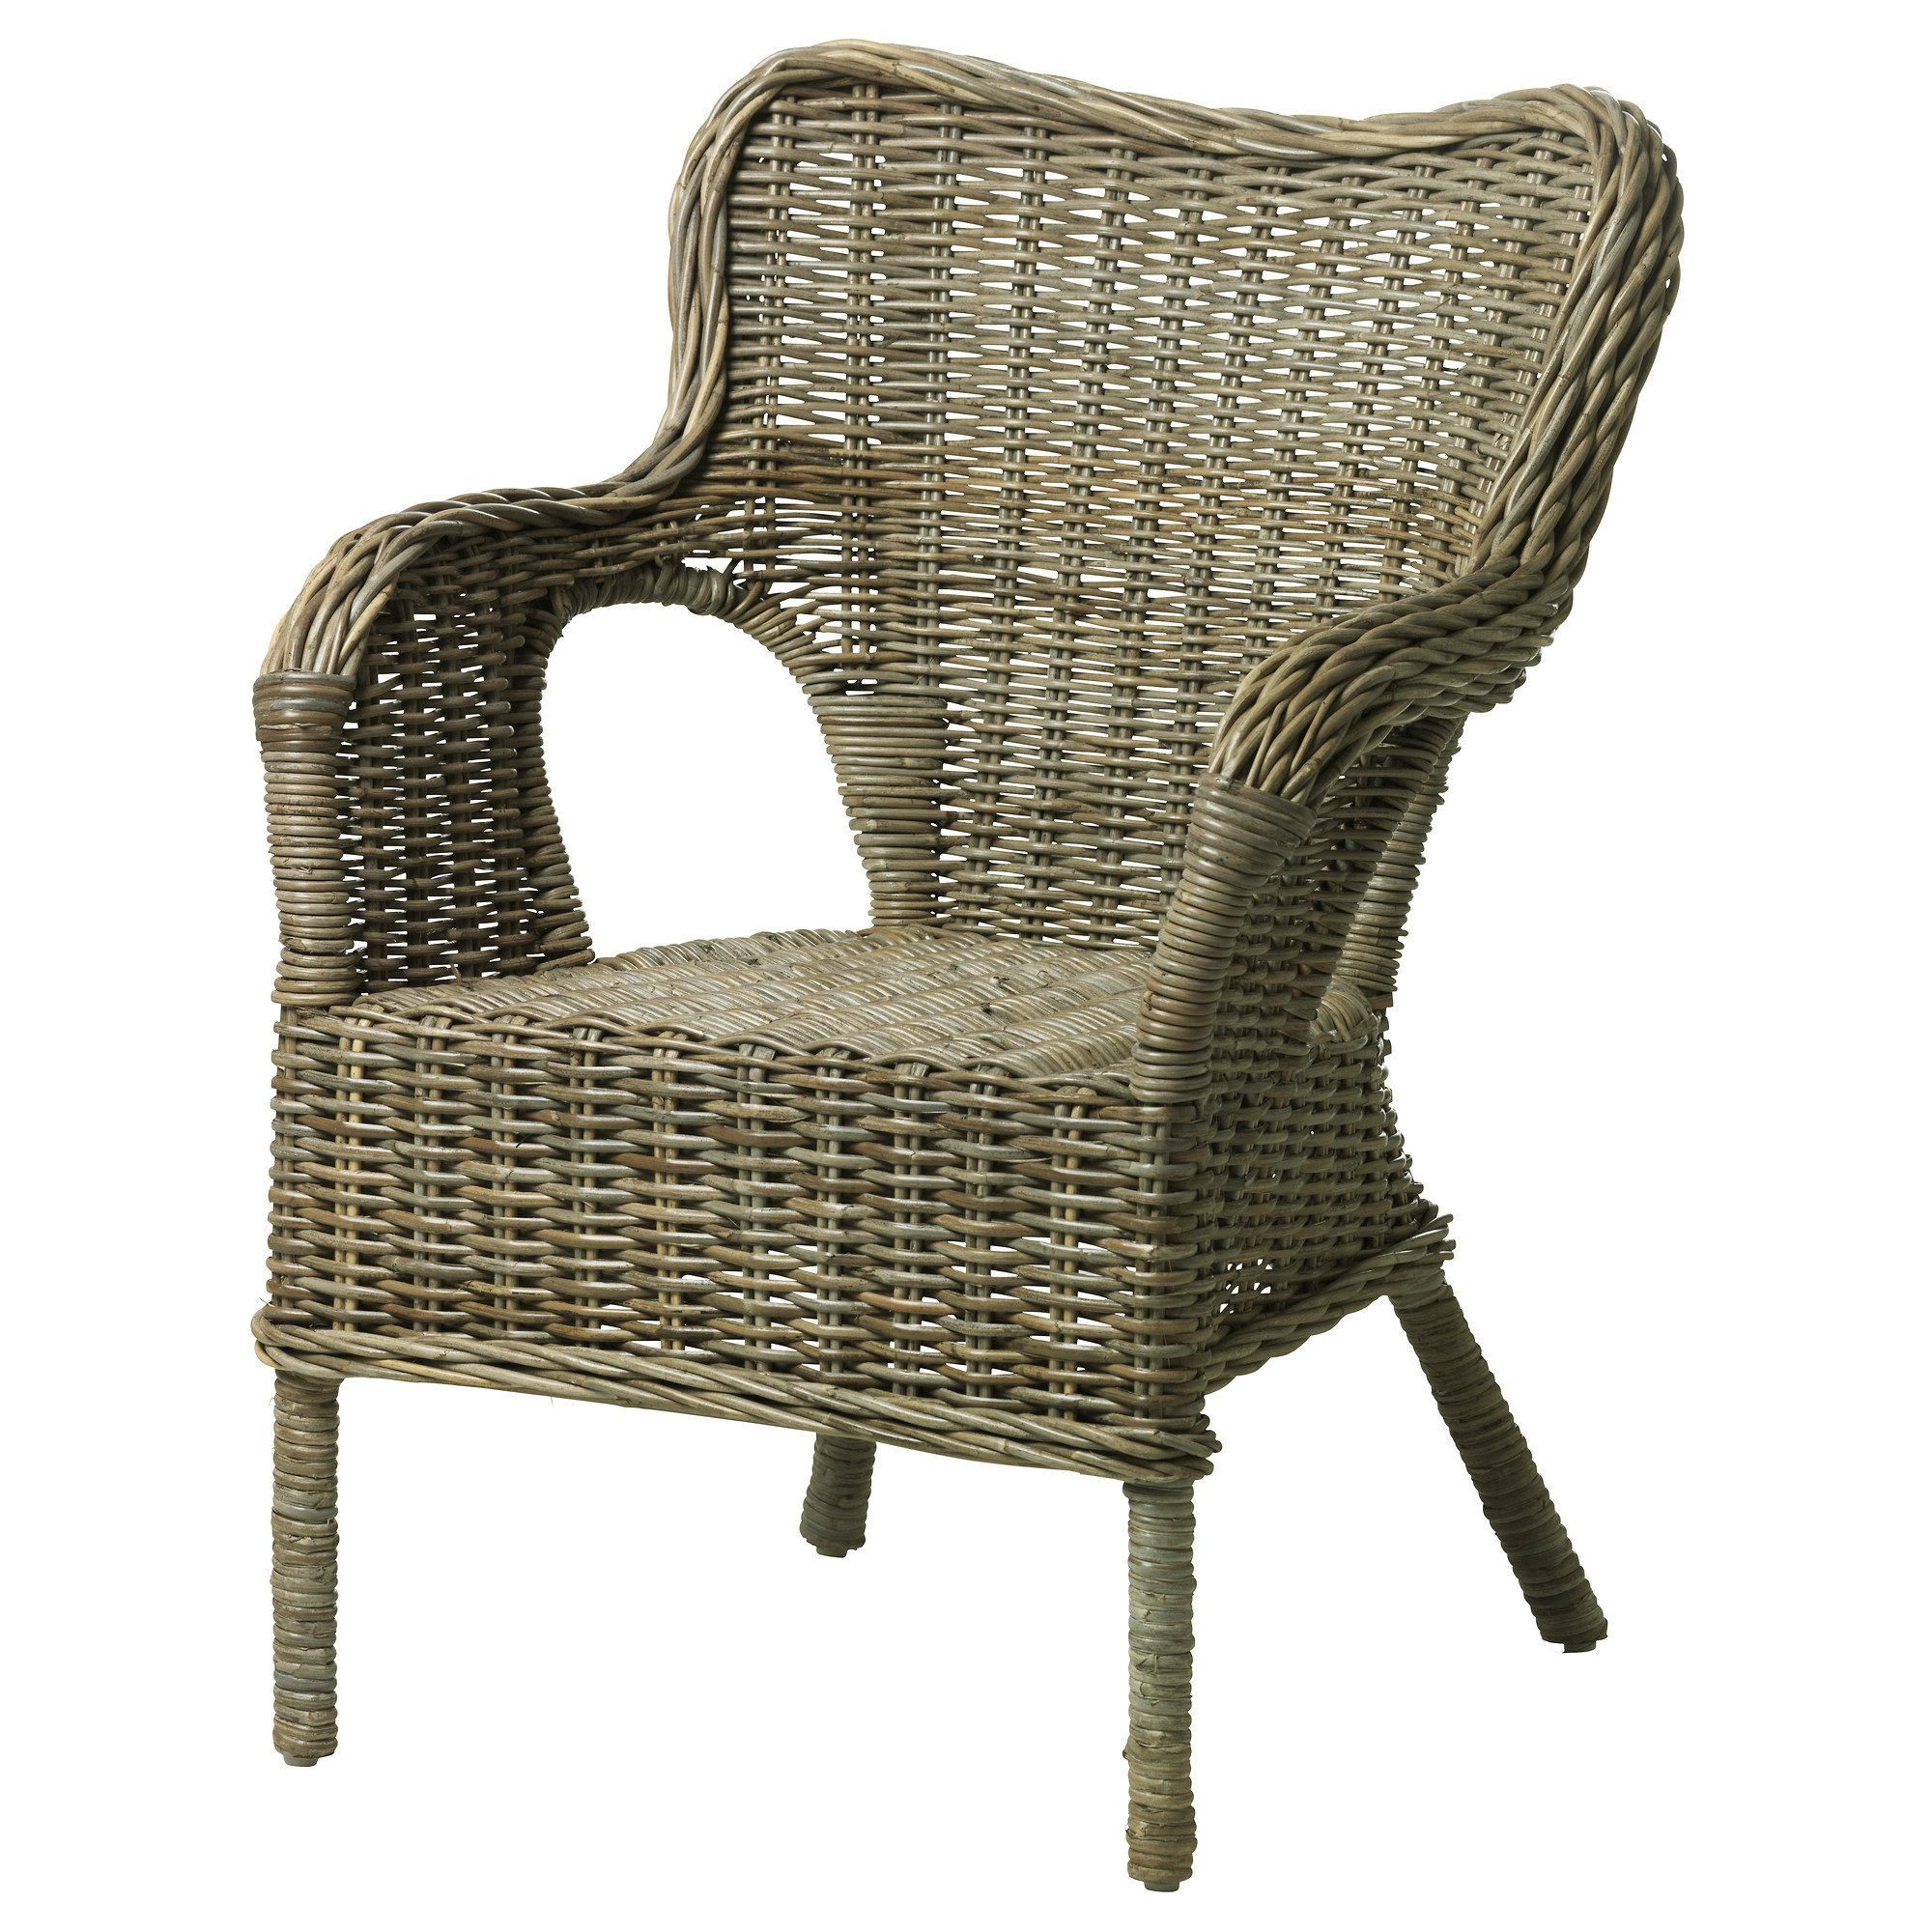 wicker chair byholma armchair - ikea iaejvgv